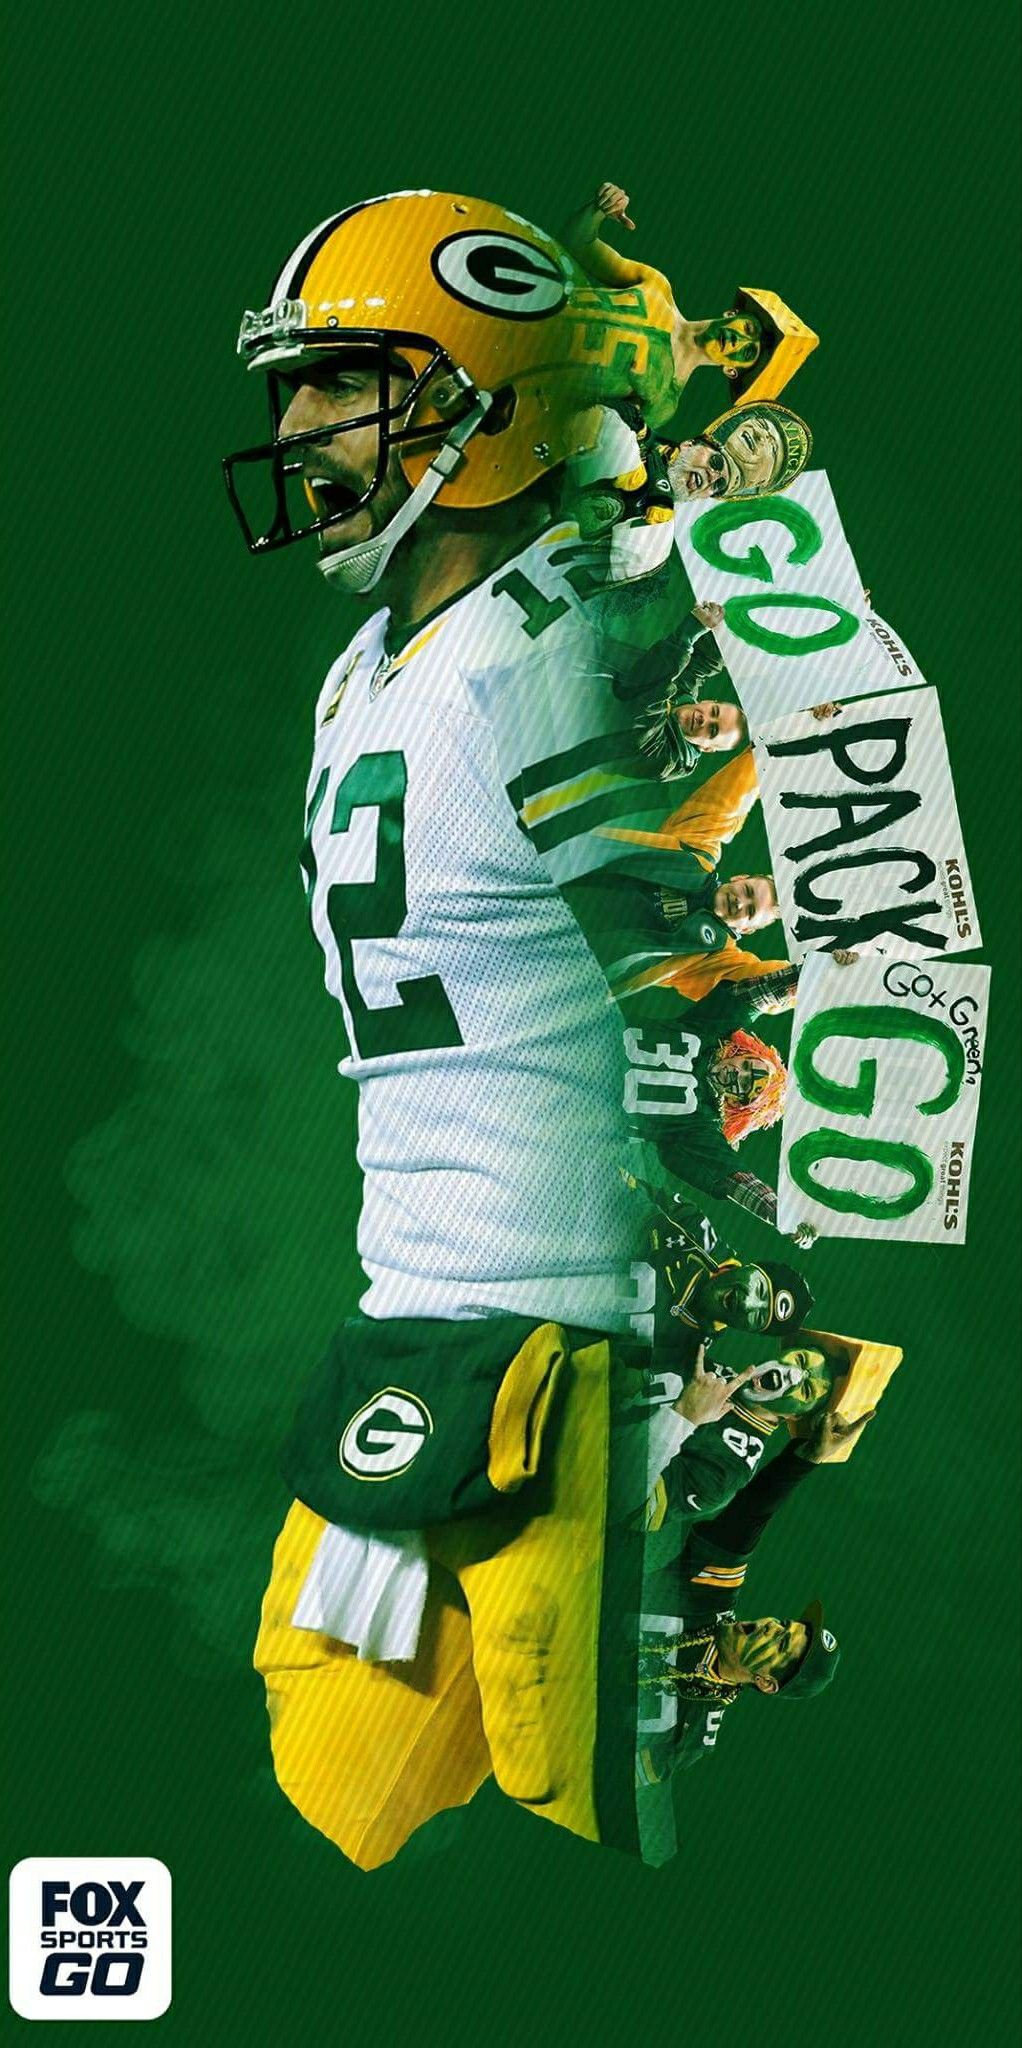 Aaron Rodgers Wallpaper Leader Of The Pack Green Bay Packers Wallpaper Green Bay Packers Nfl Football Wallpaper